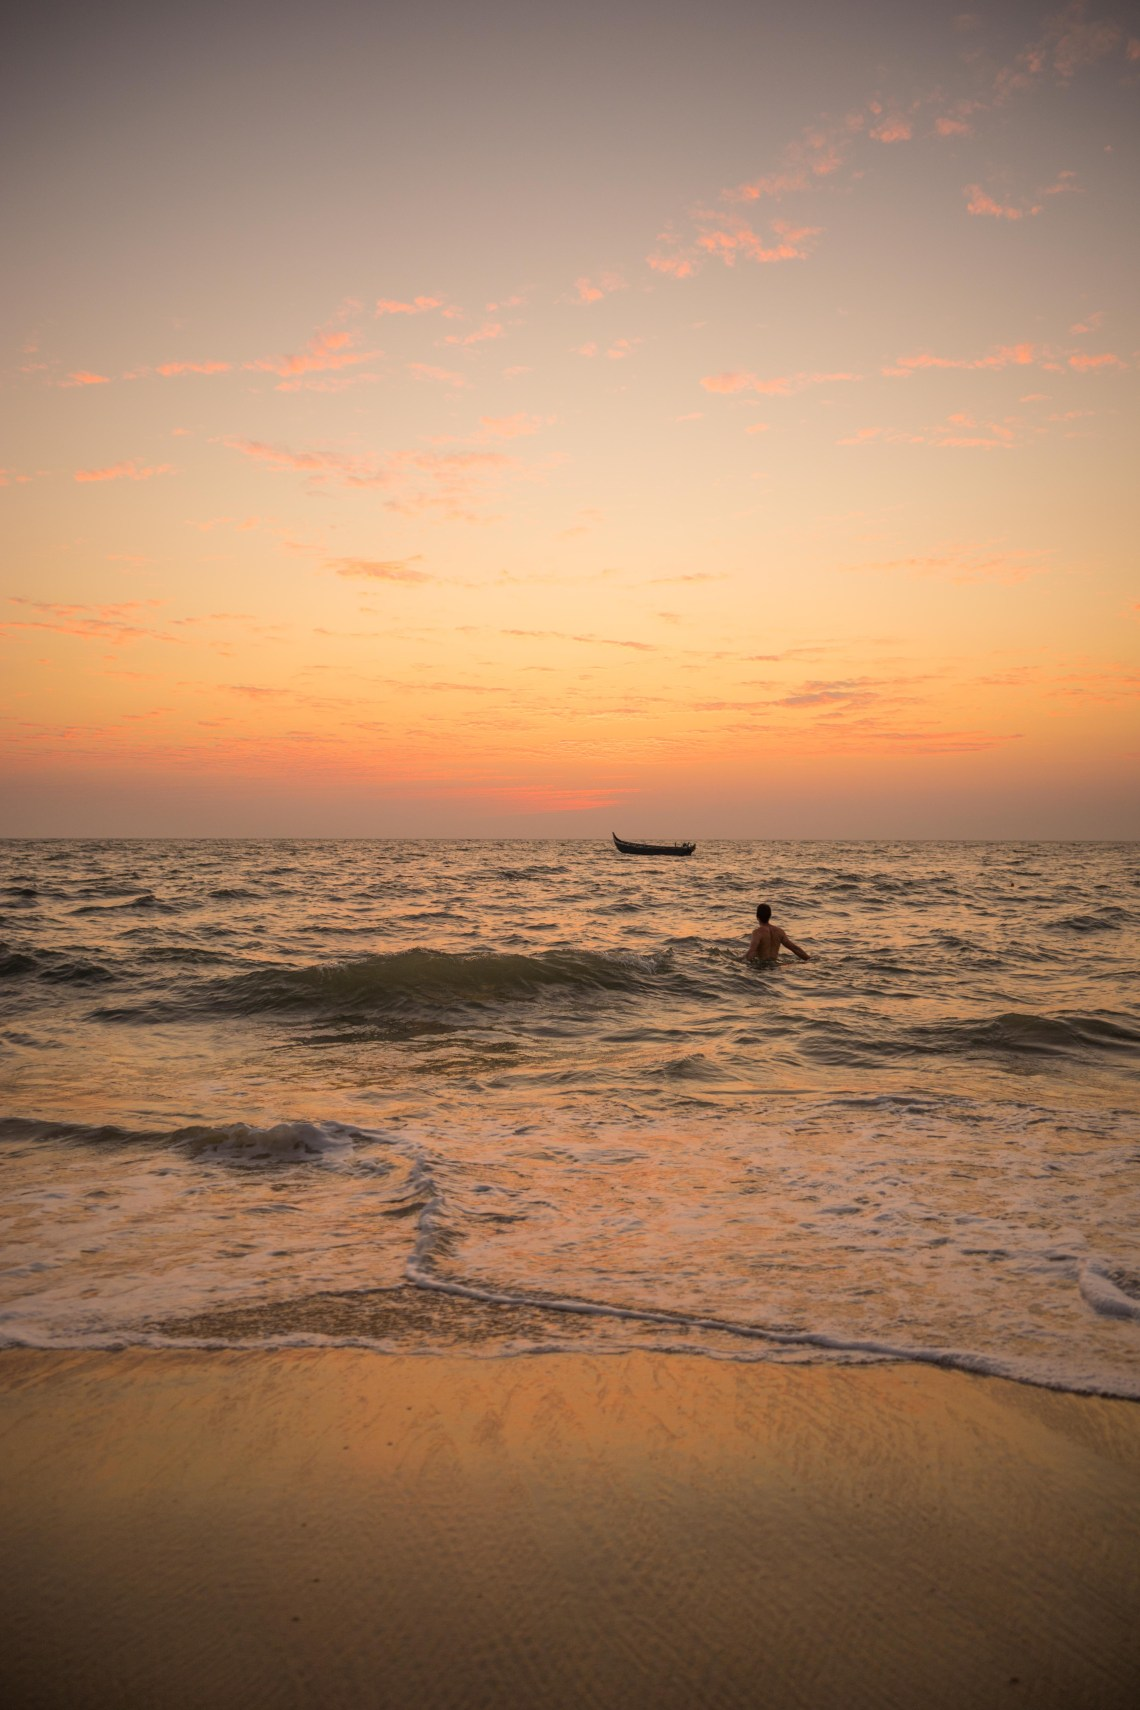 A person bathing in the sea shortly after sunset